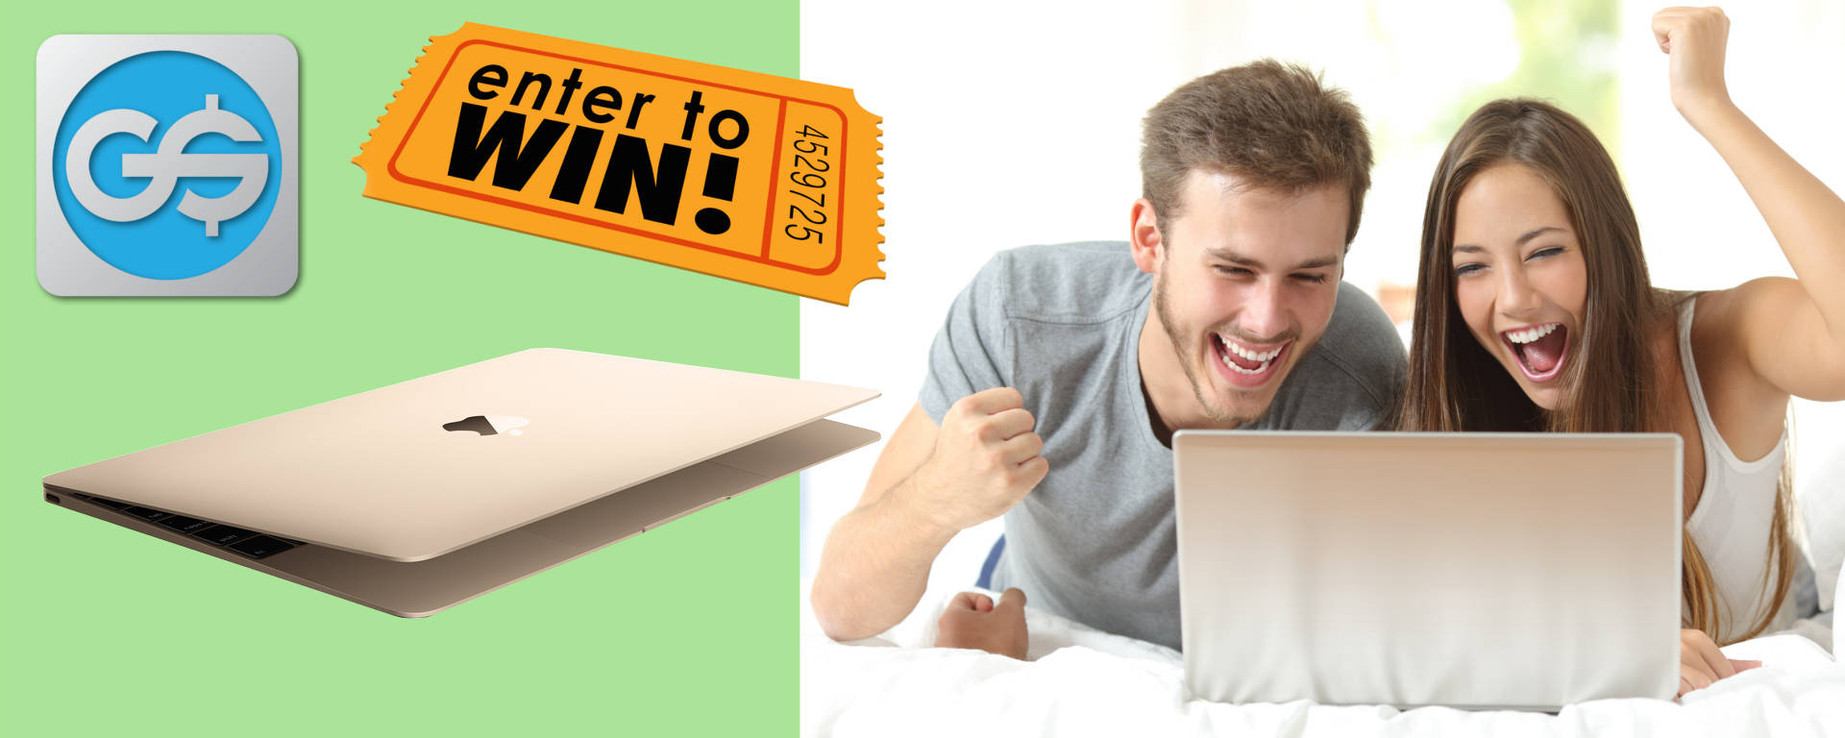 Go for the Gold Macbook by entering the GainSaver Sweepstakes for Feb Apr 2017